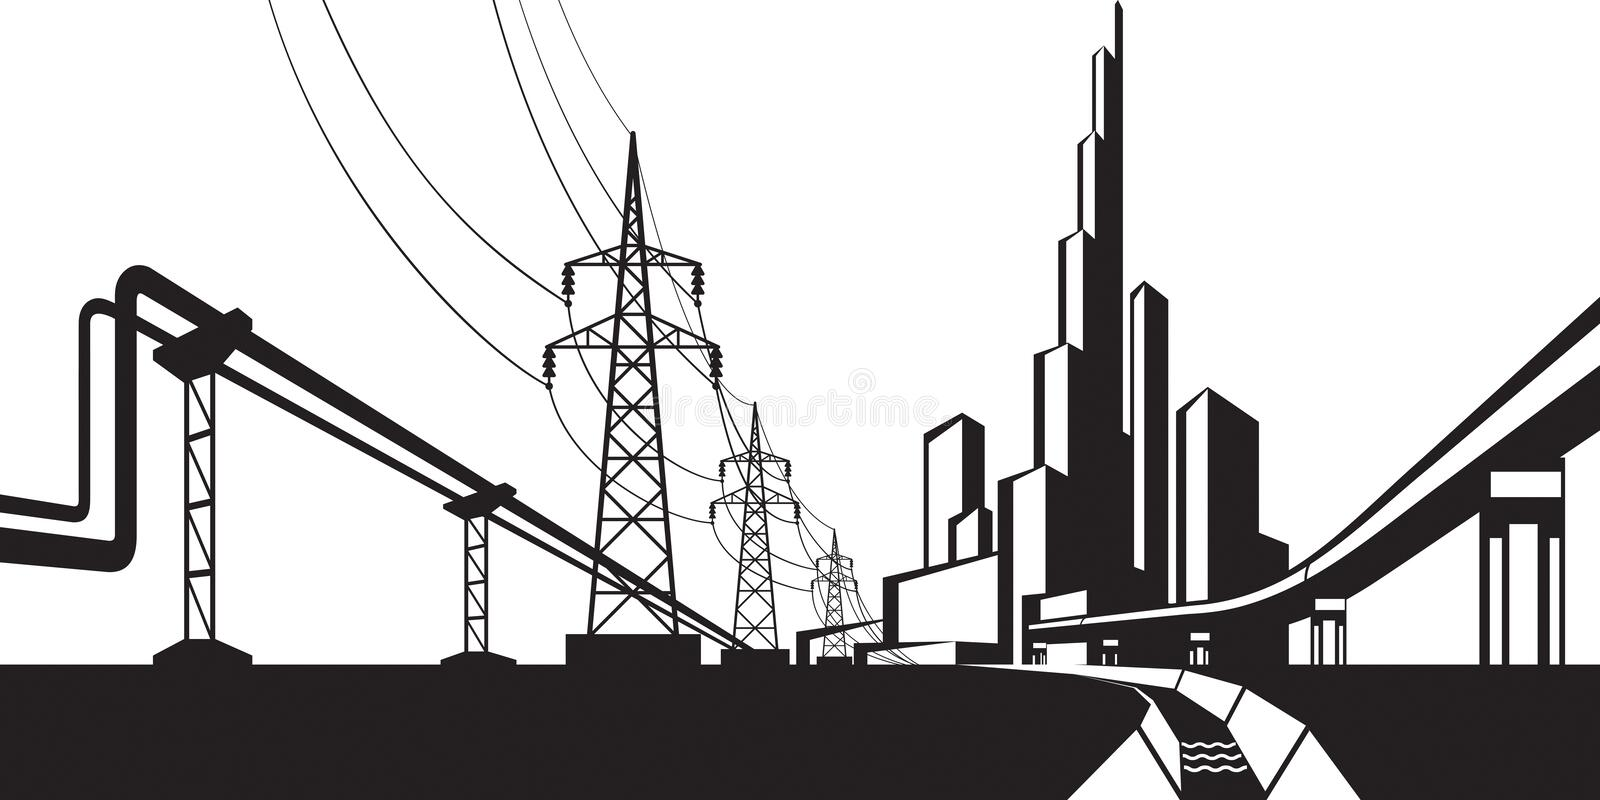 Installations for supply of energy sources. Vector illustration royalty free illustration